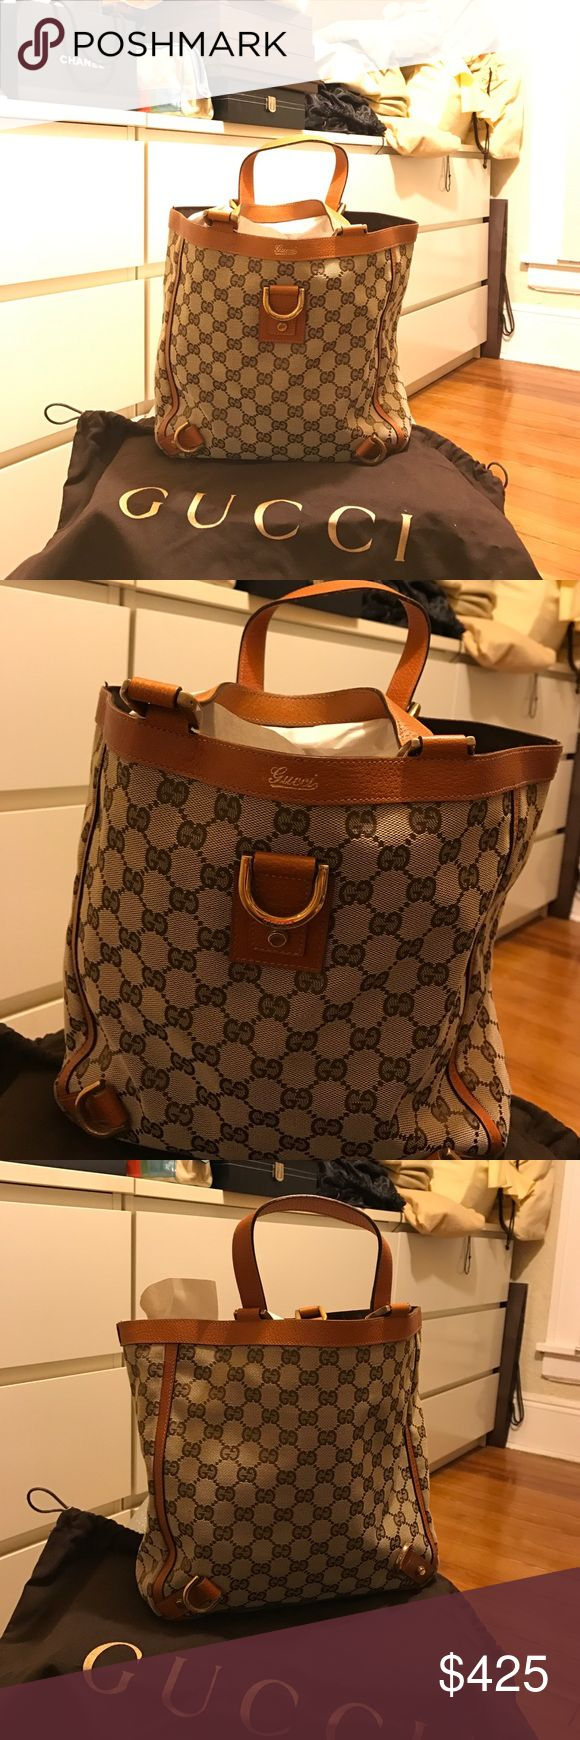 GUCCI Monogram Abbey Small Tote Brown Beautiful GUCCI Monogram Abbey Small Tote Brown          I still have the original dust bag and shopping bag! Gucci Bags Totes